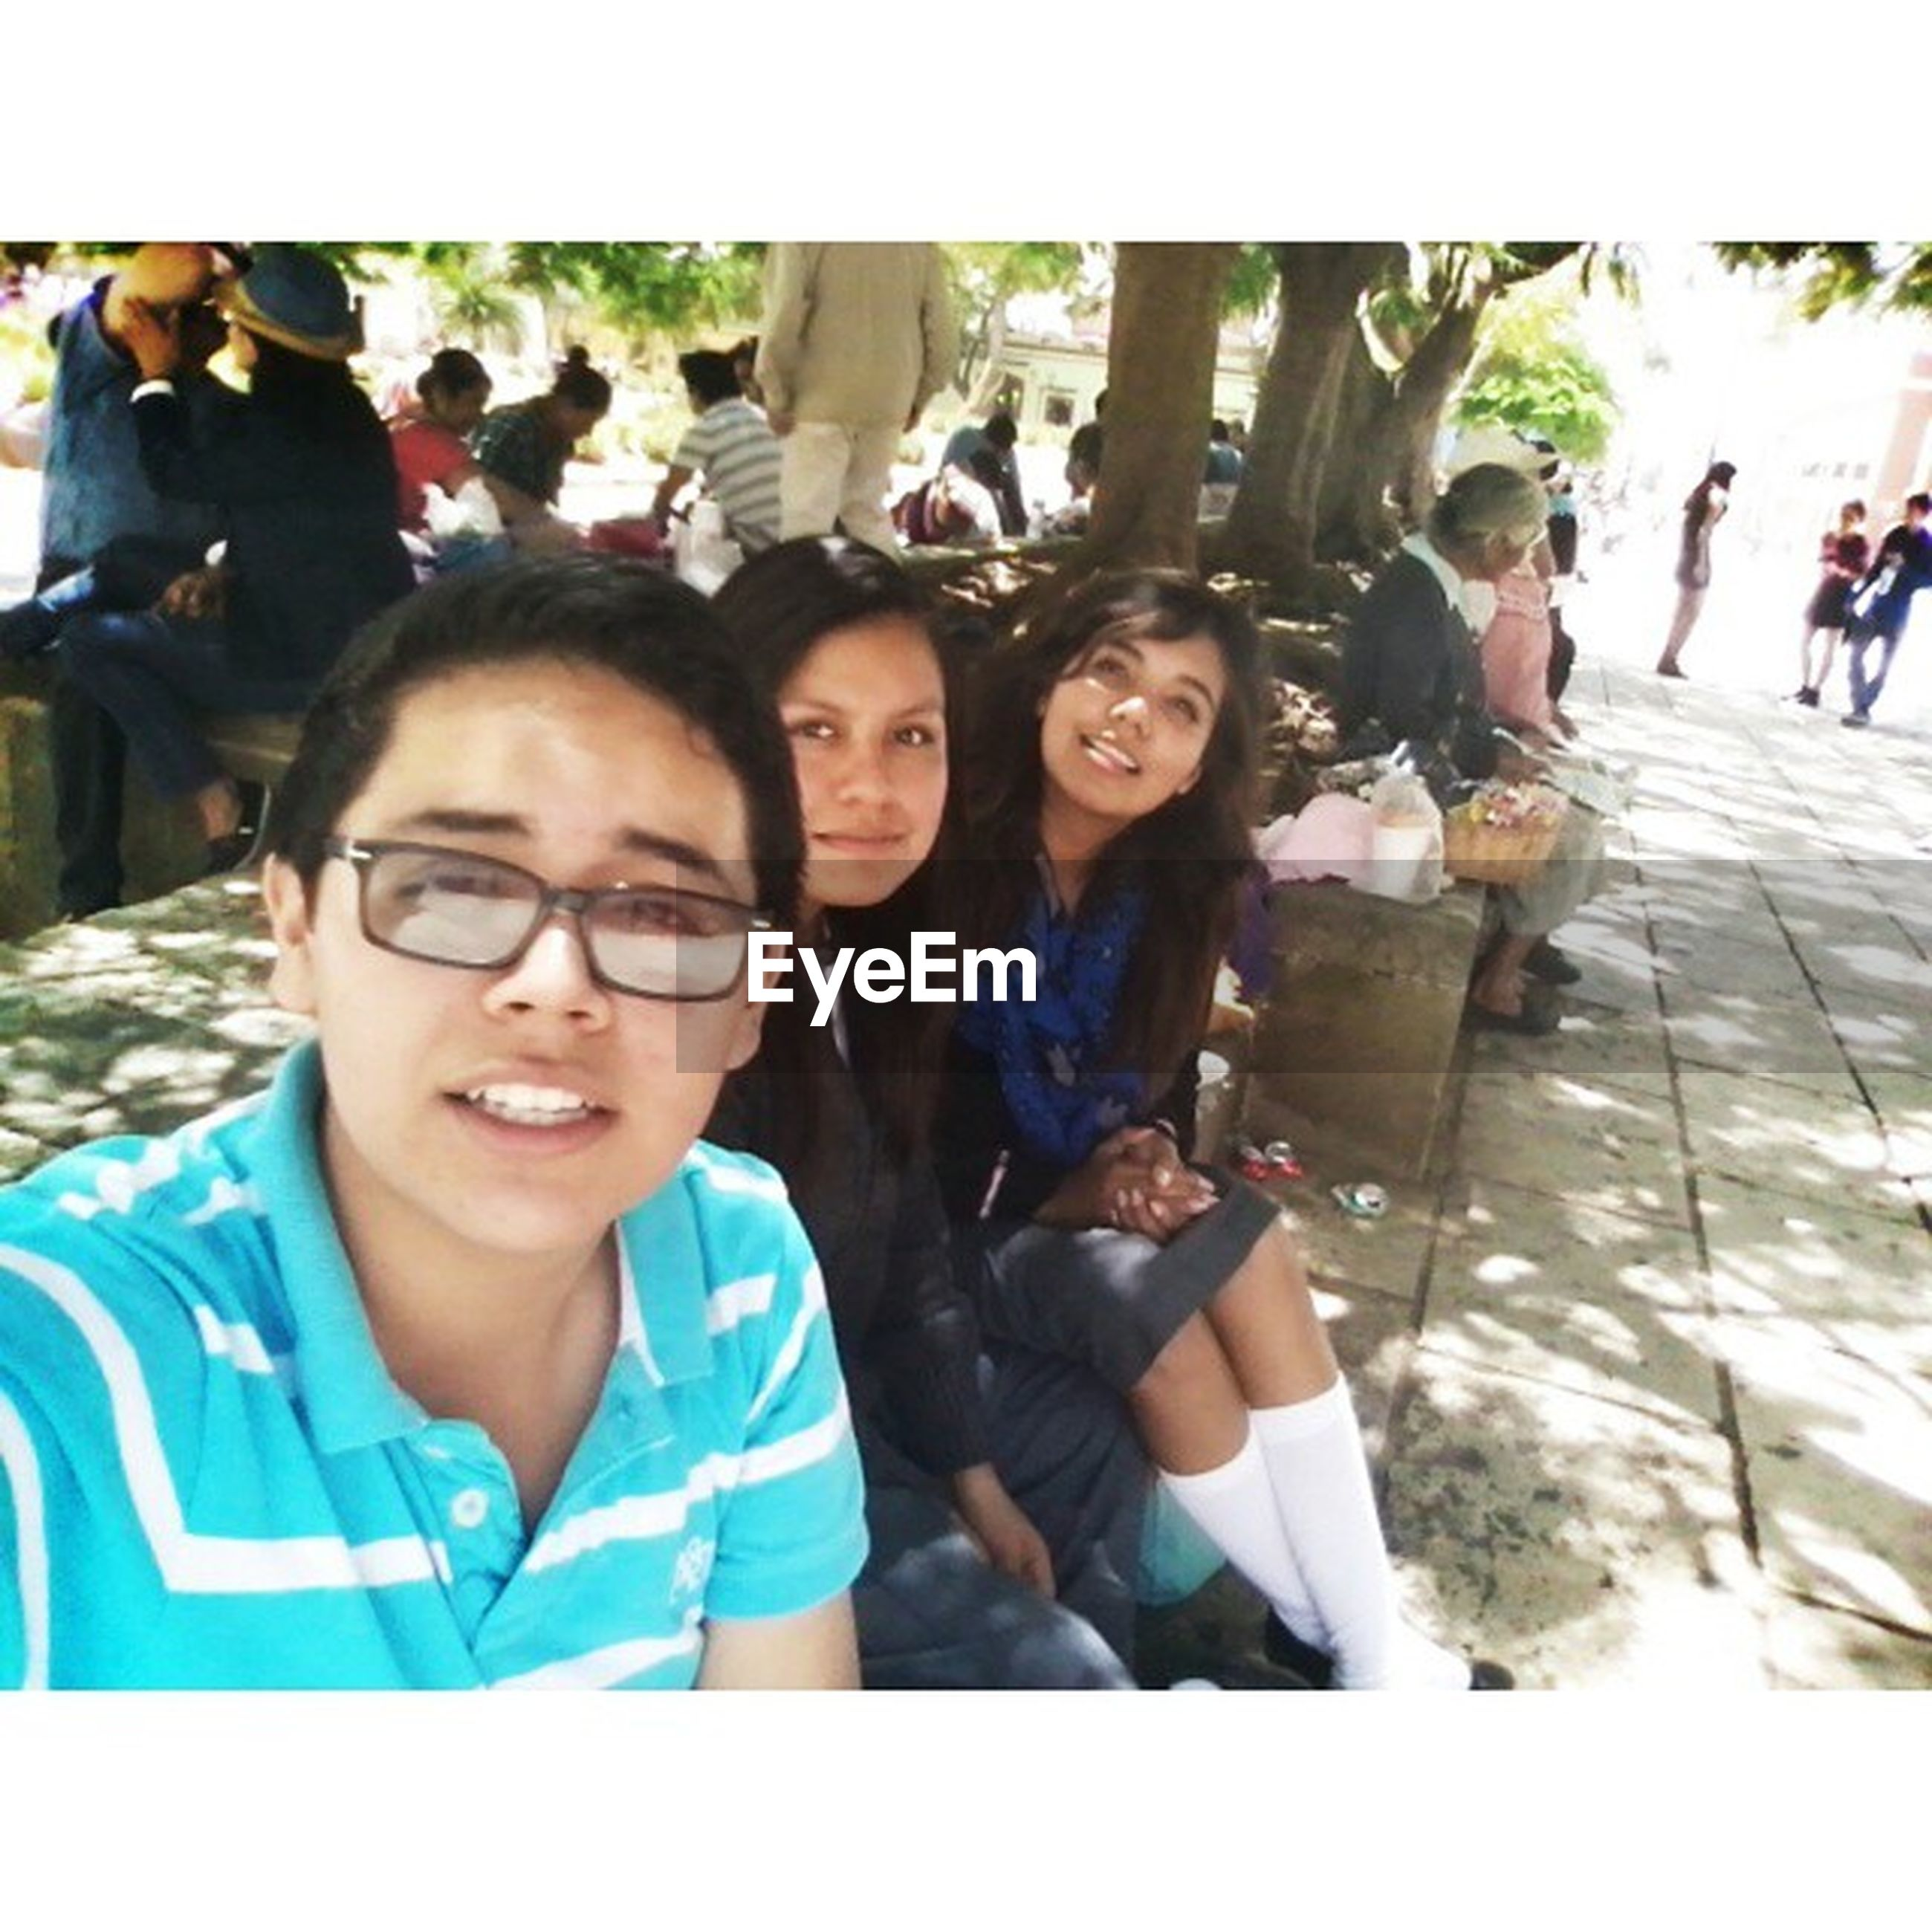 transfer print, lifestyles, togetherness, leisure activity, large group of people, auto post production filter, enjoyment, fun, bonding, person, men, friendship, casual clothing, happiness, love, standing, front view, mixed age range, young women